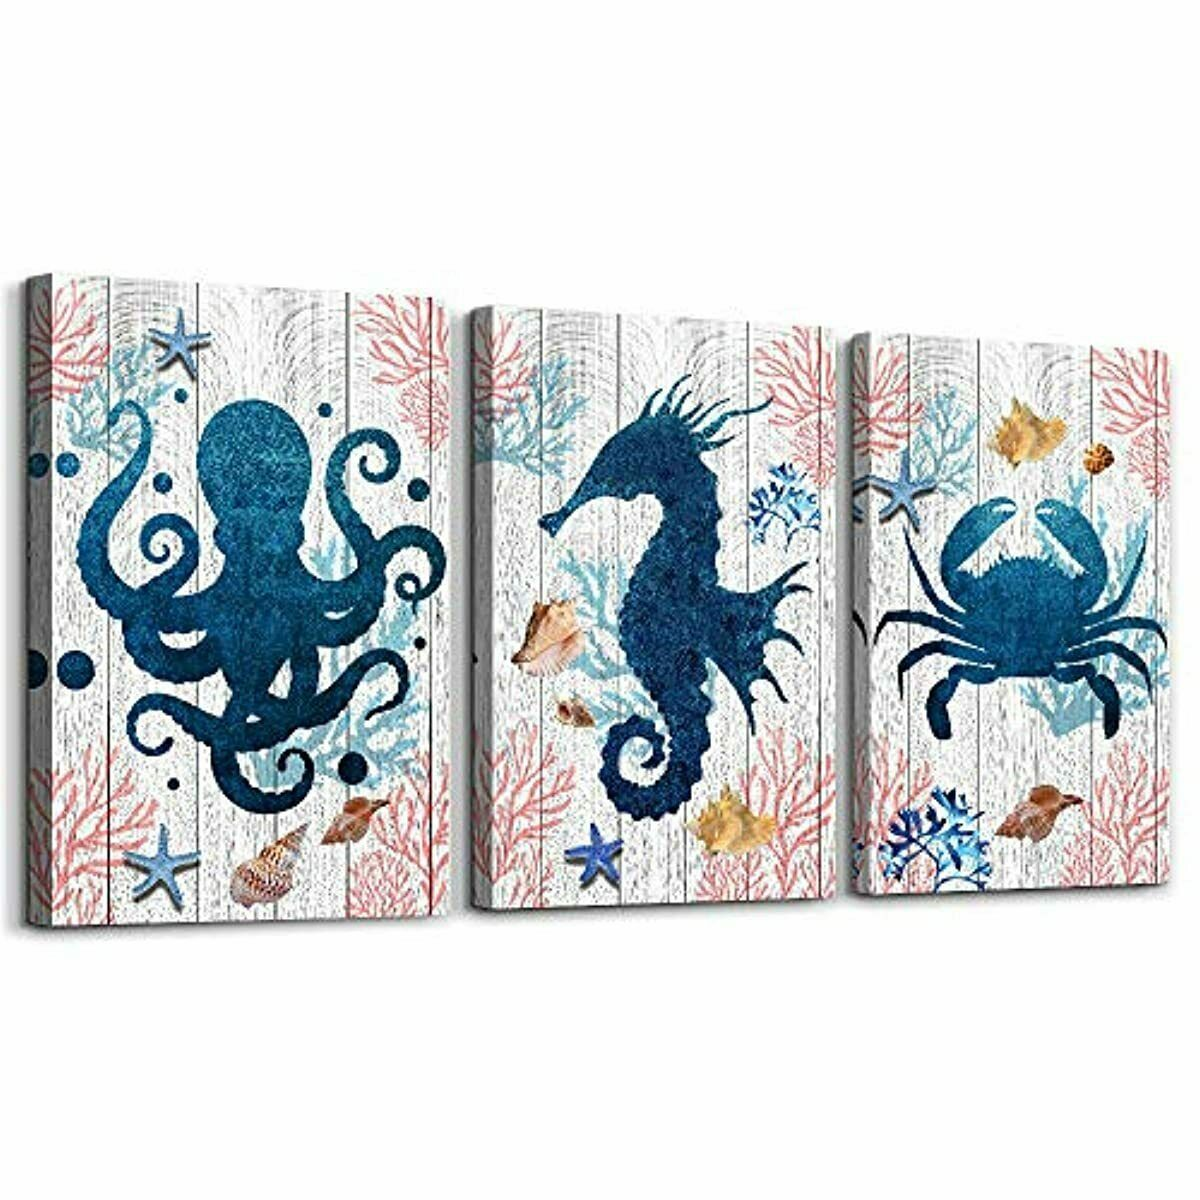 Blue Ocean Life Theme Canvas Prints Wall Art Paintings For Living Room Wall Artworks Sea Animal Sea Horse Octopus Jellyfish Pictures Bedroom Decorations 3 Panels Home Bathroom Wall Decor Posters Home